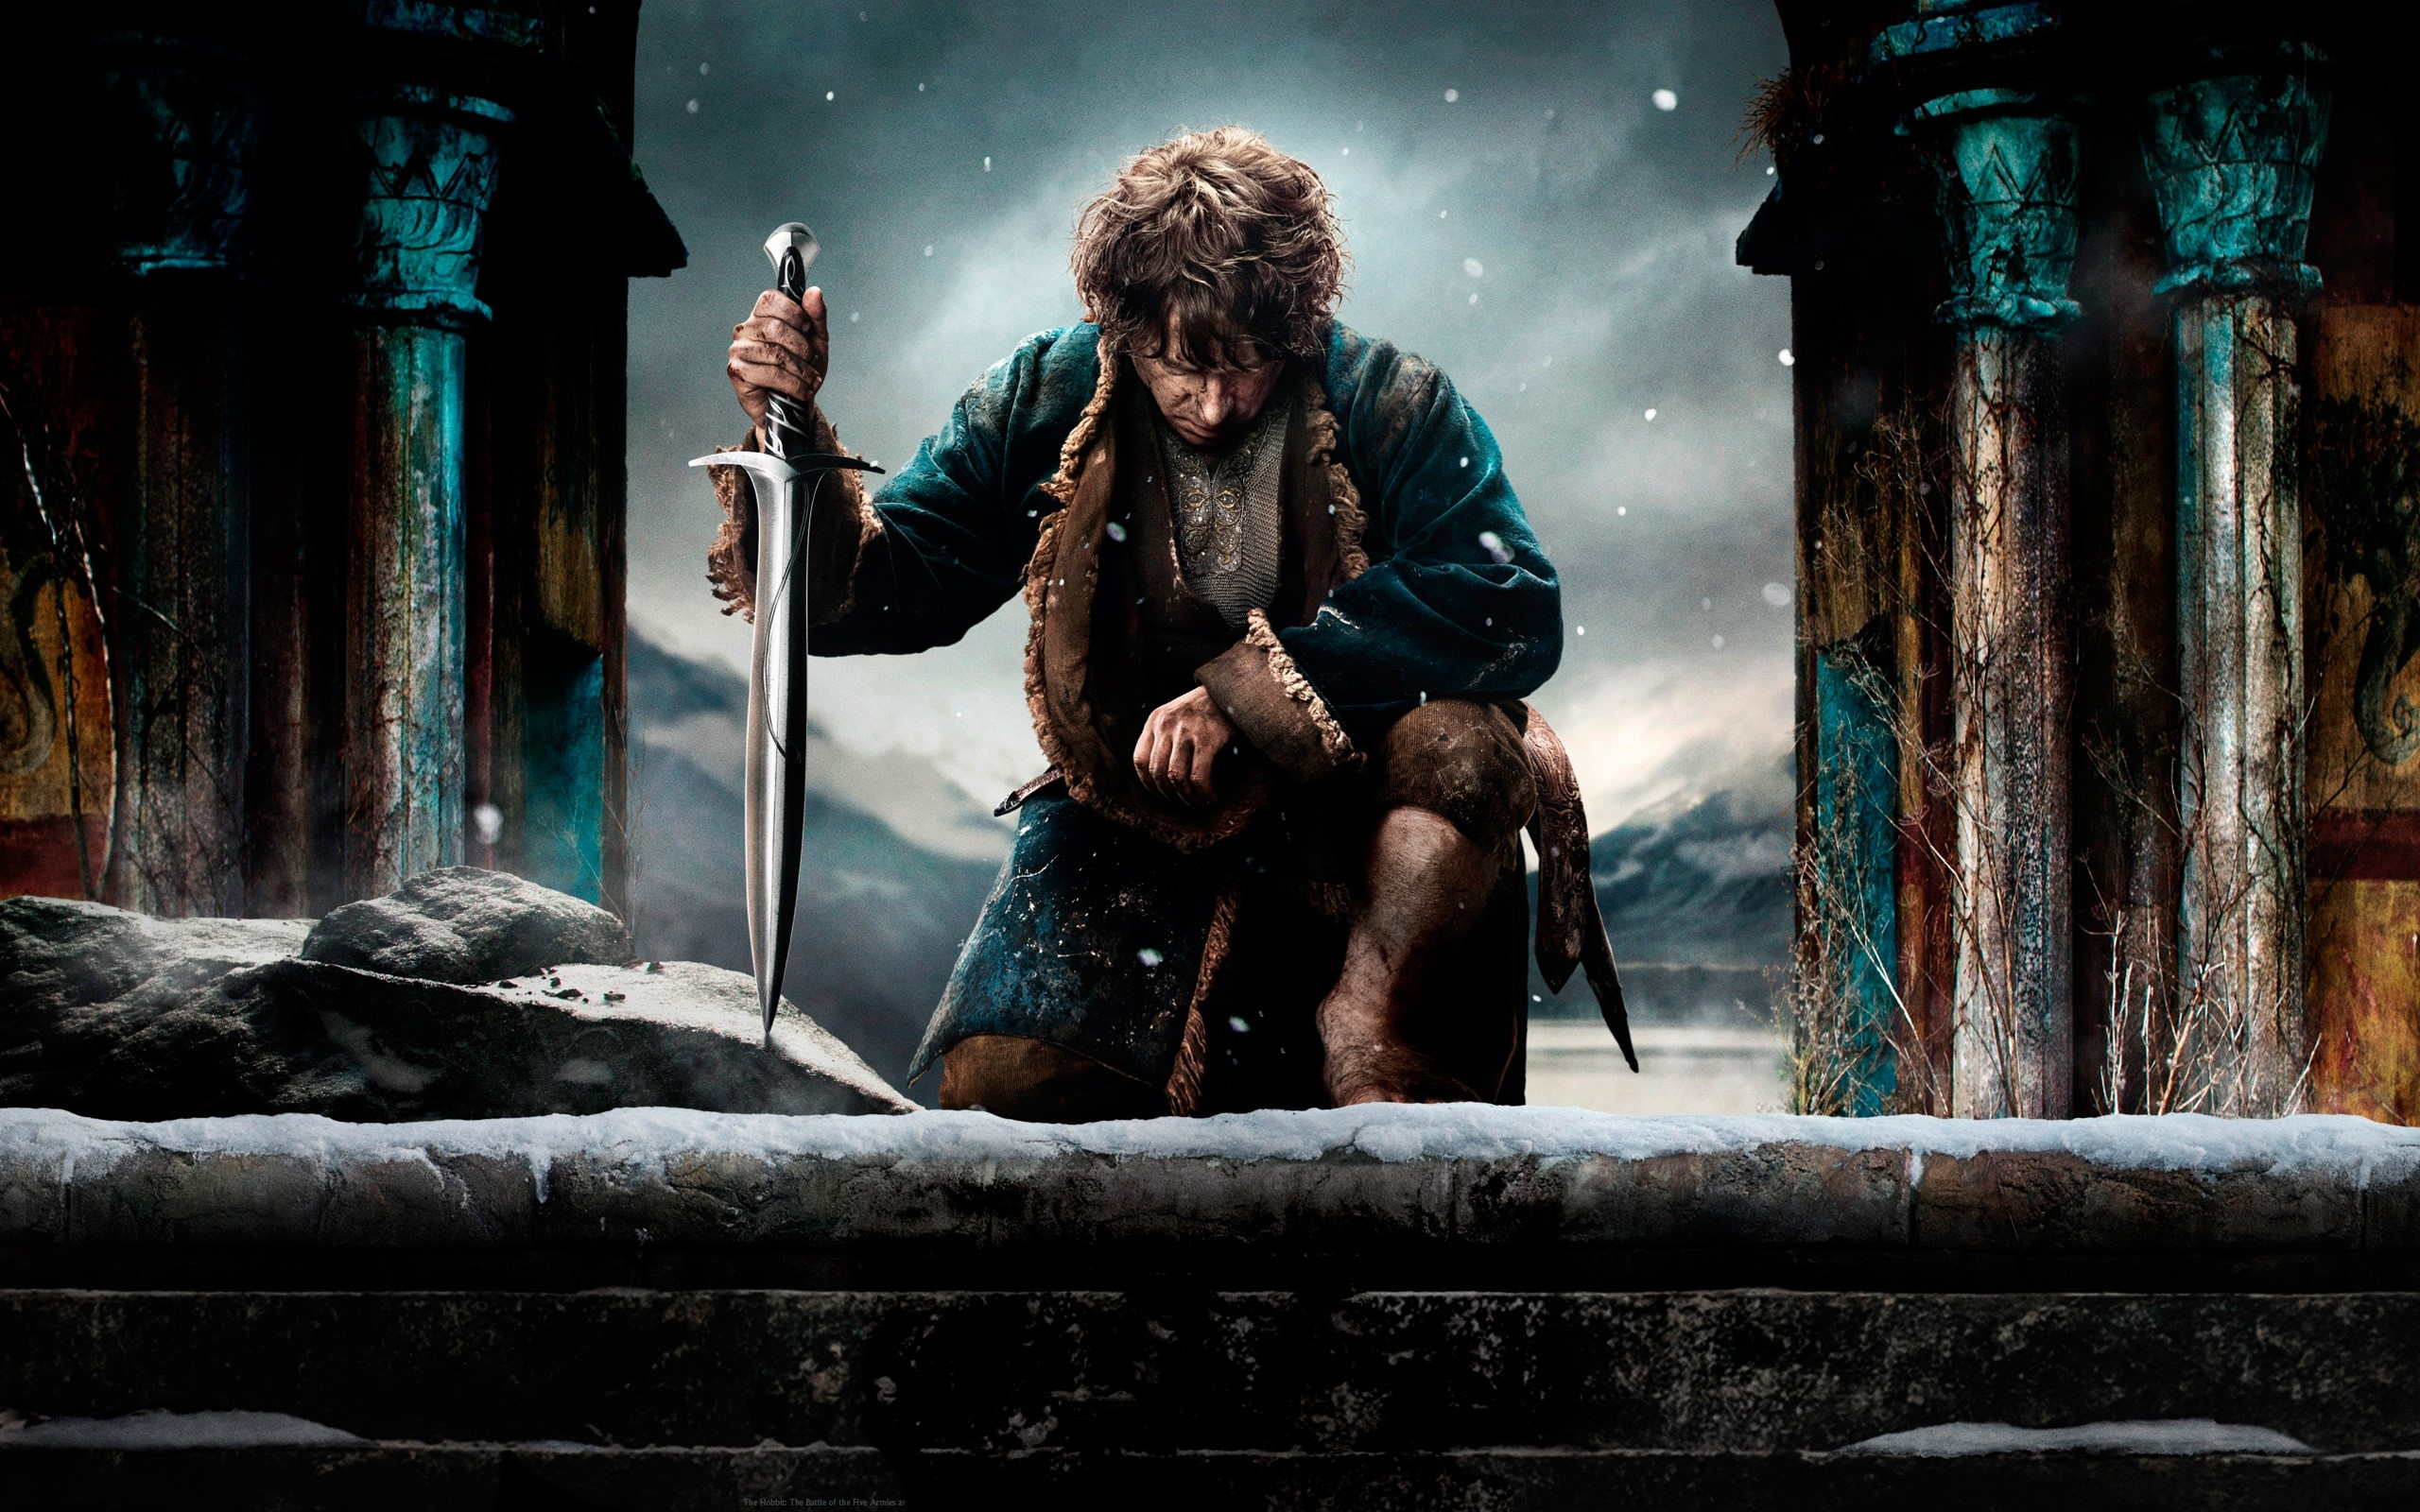 The Hobbit 3 Wallpaper 2k Quad Hd Id142